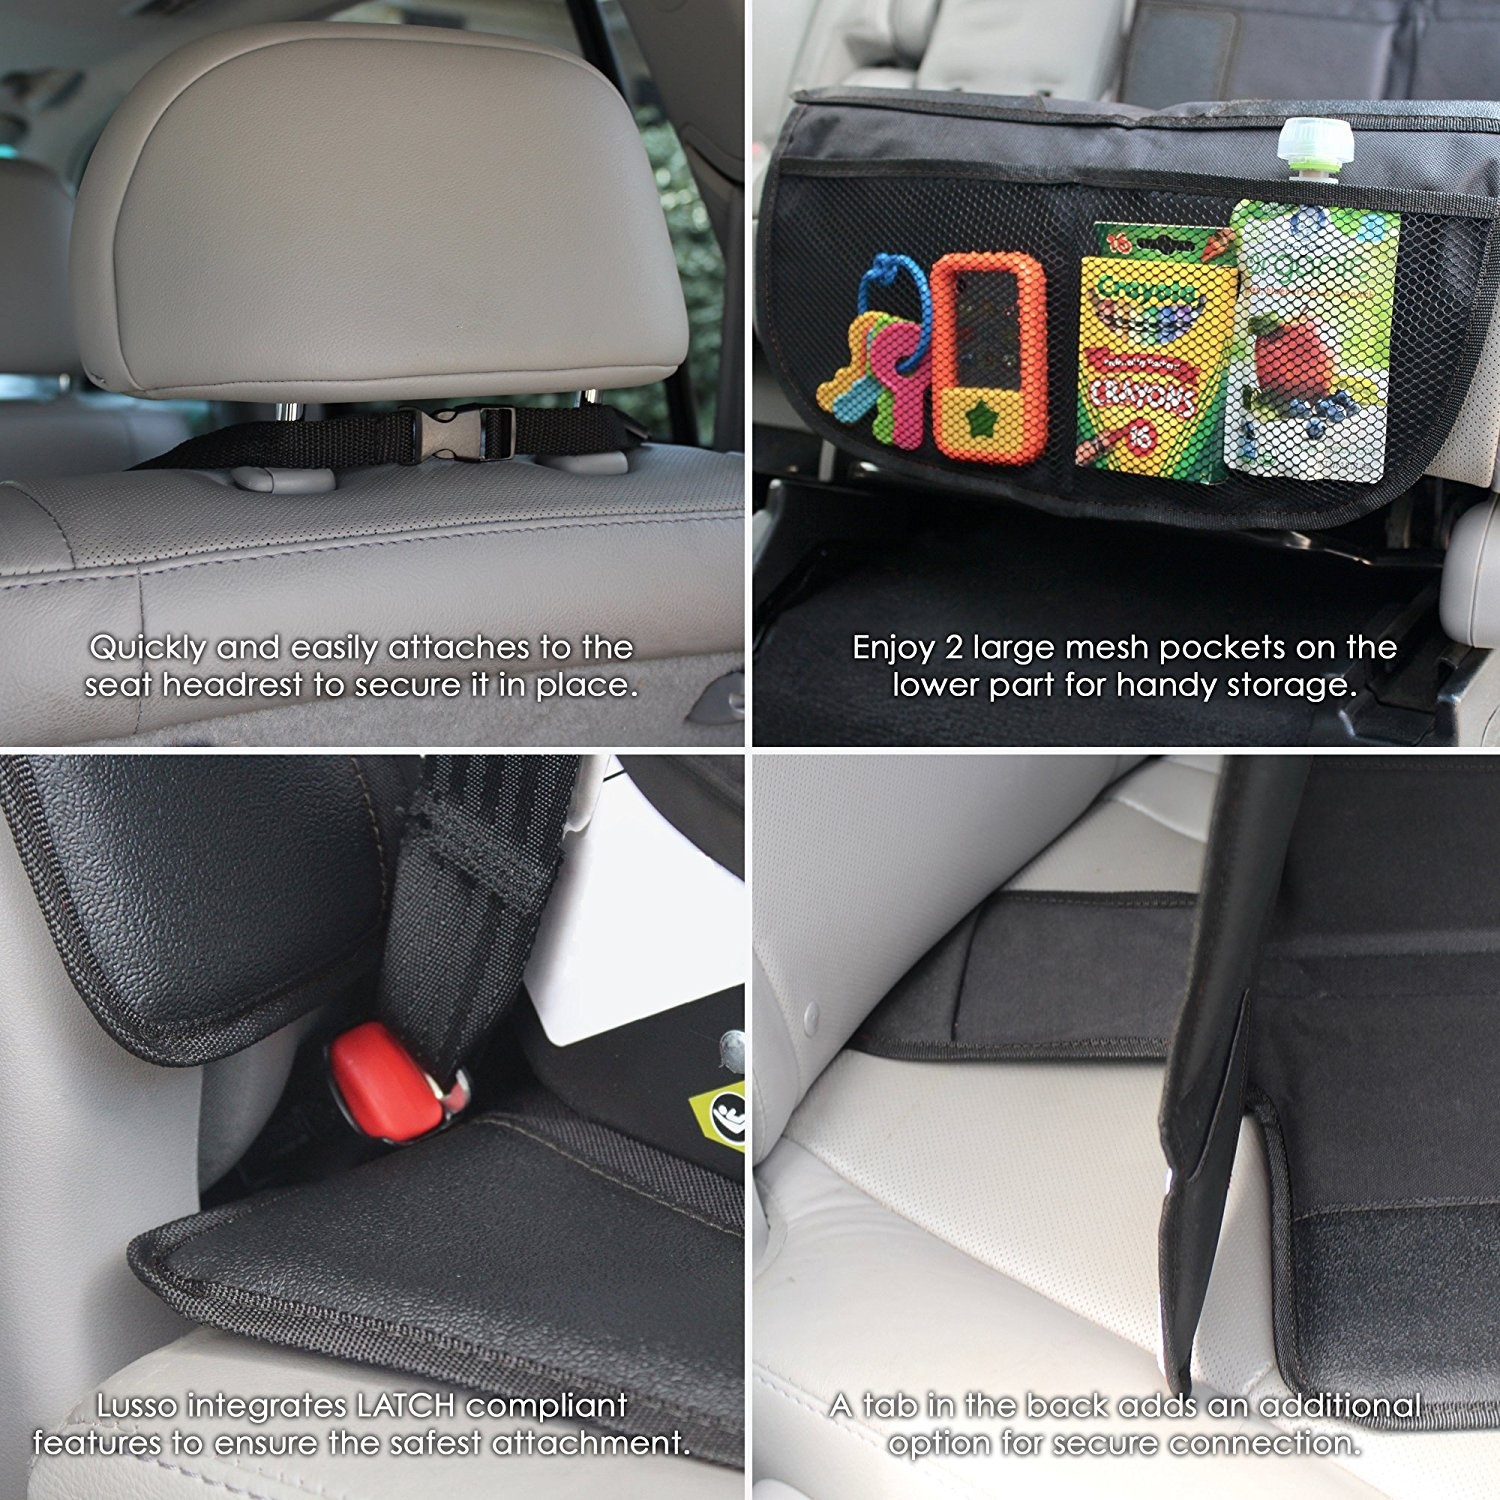 Waterproof 600D Fabric PVC Leather Reinforced Corners /& 2 Large Pockets for Handy Storage Car Seat Protector with Thickest Padding Best Coverage Available Durable Featuring XL Size